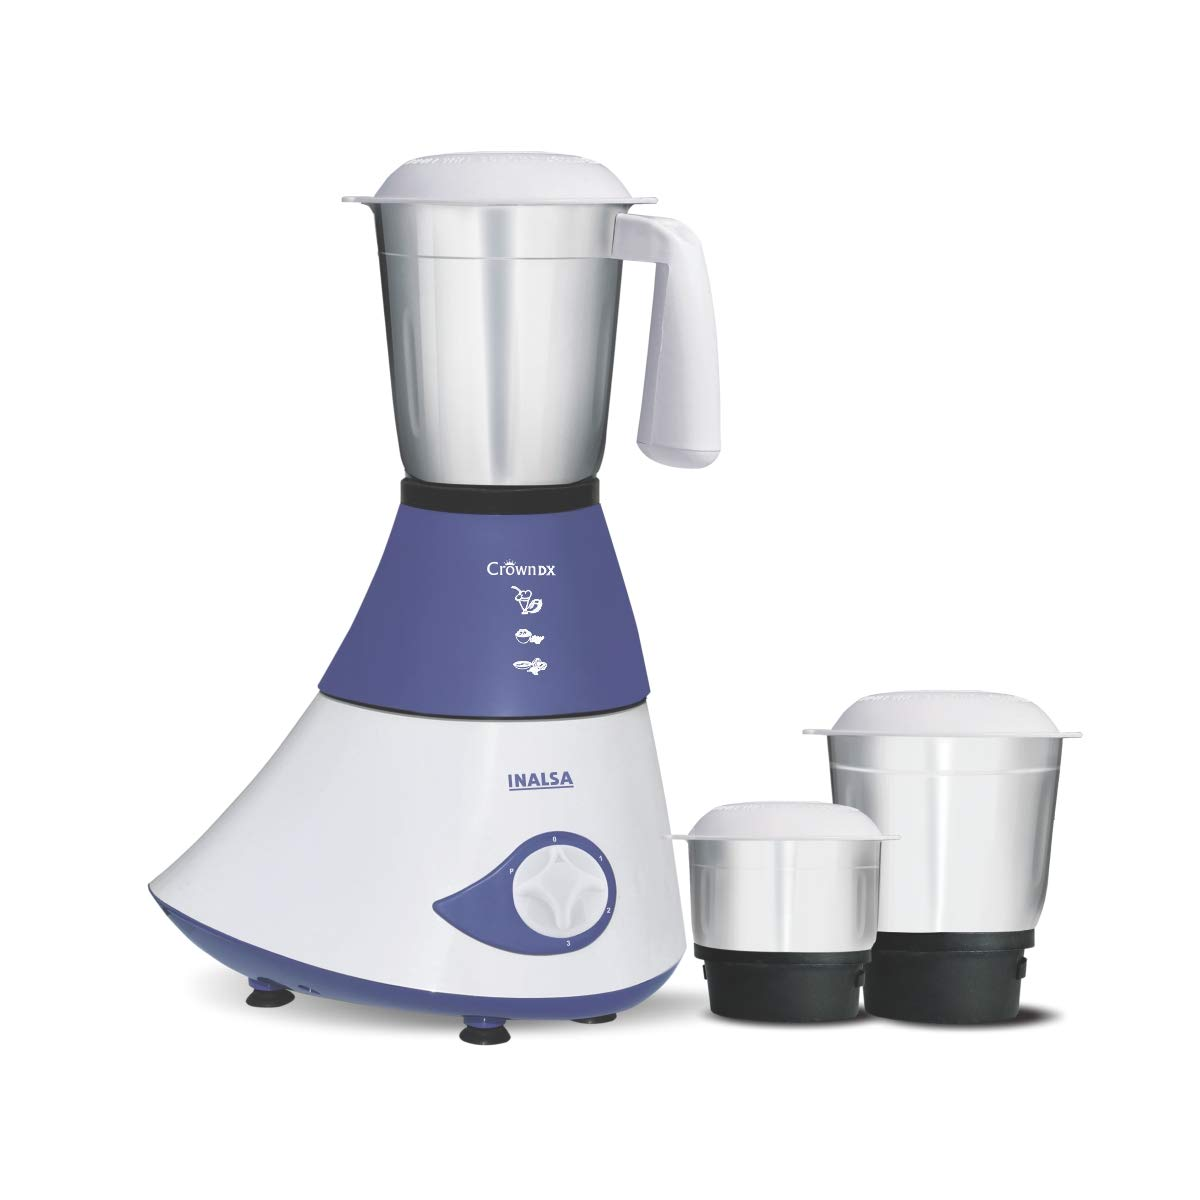 6. Inalsa Crown Mixer Grinder